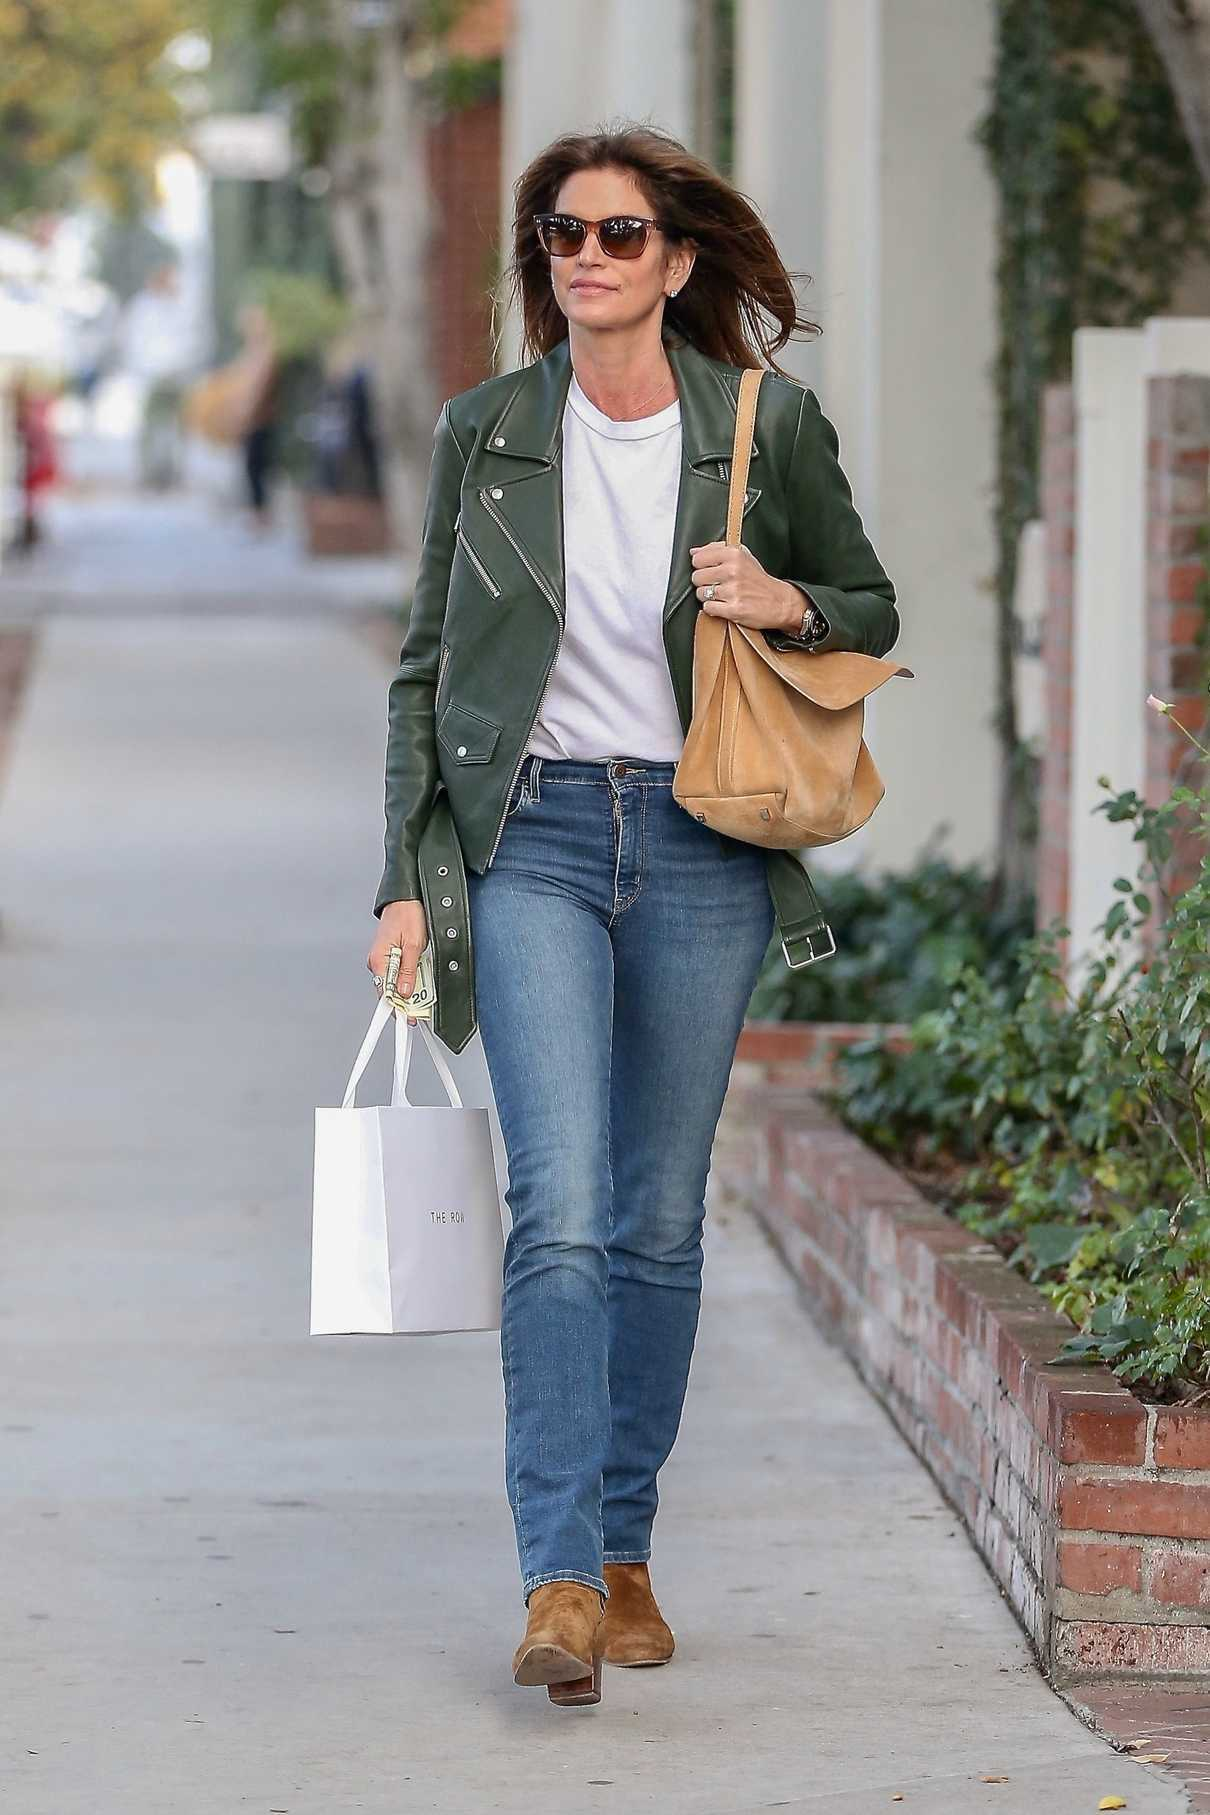 Cindy Crawford in a Green Jacket